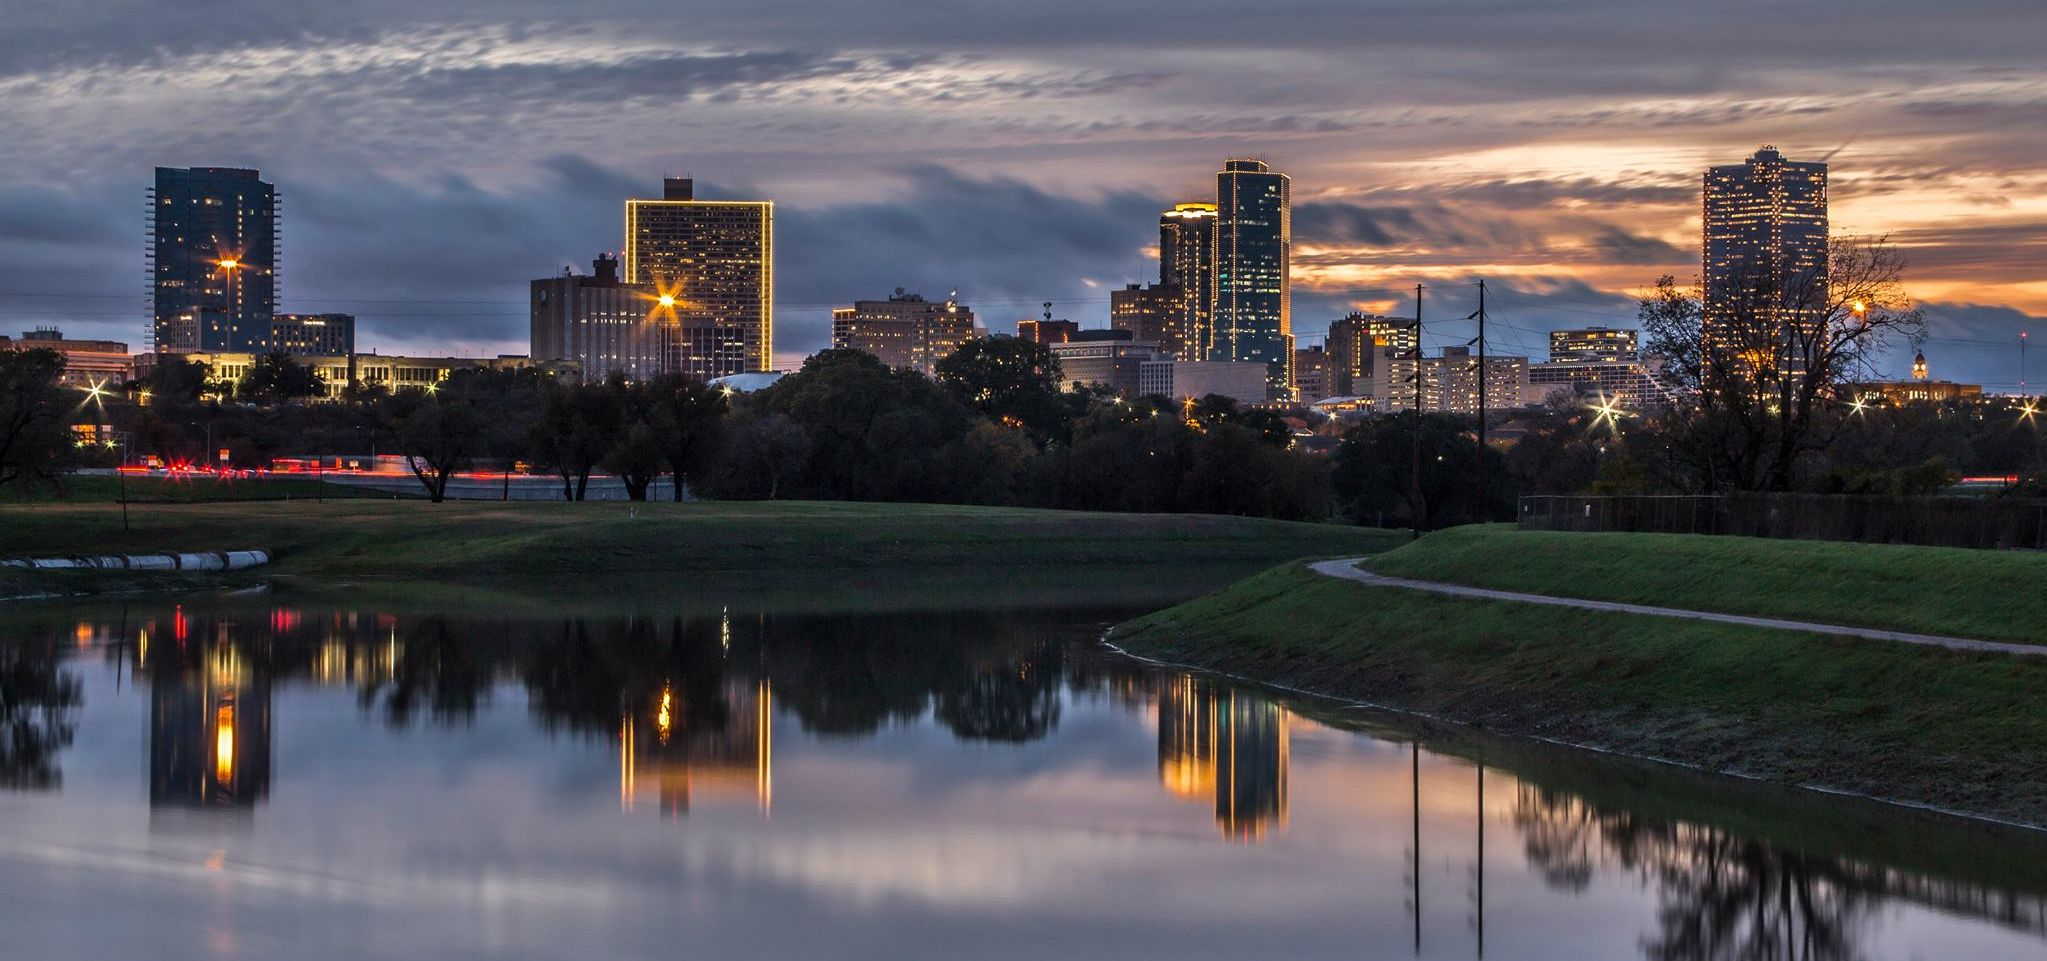 Fort Worth Skyline at dusk with lake in front